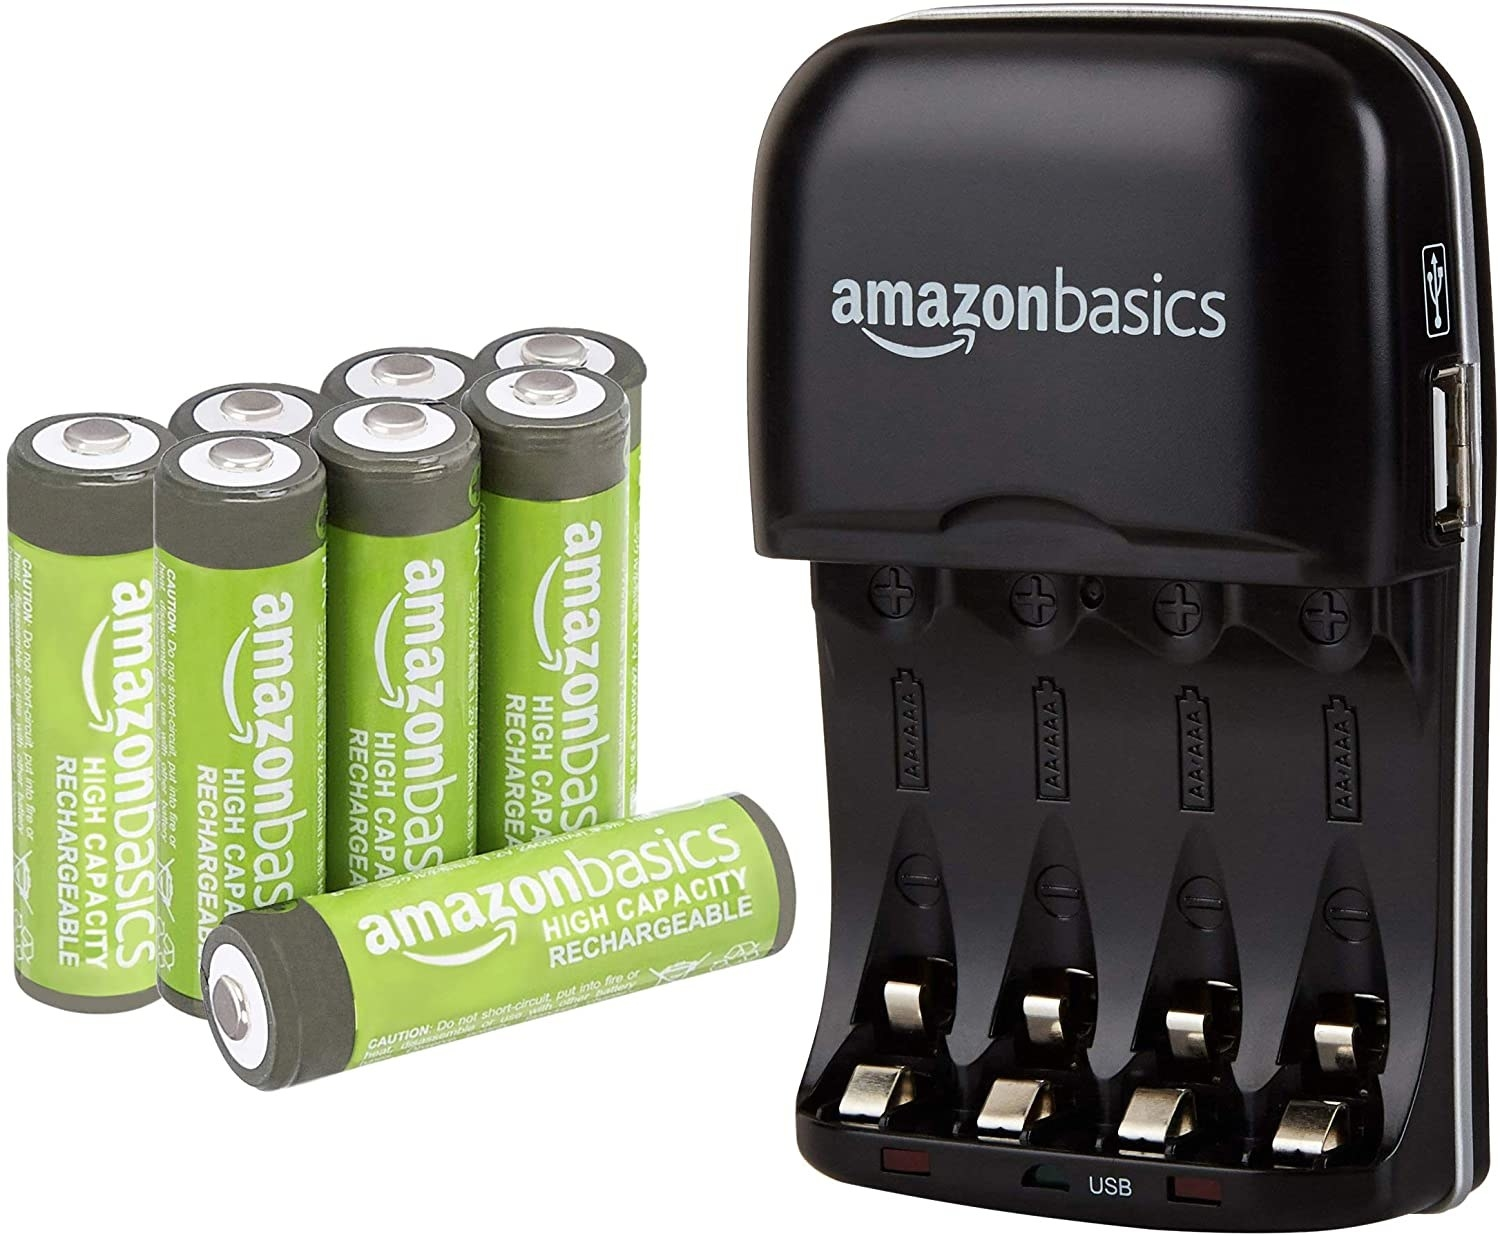 Eight lime green and gray colored Amazon rechargeable AA batteries and a black charger